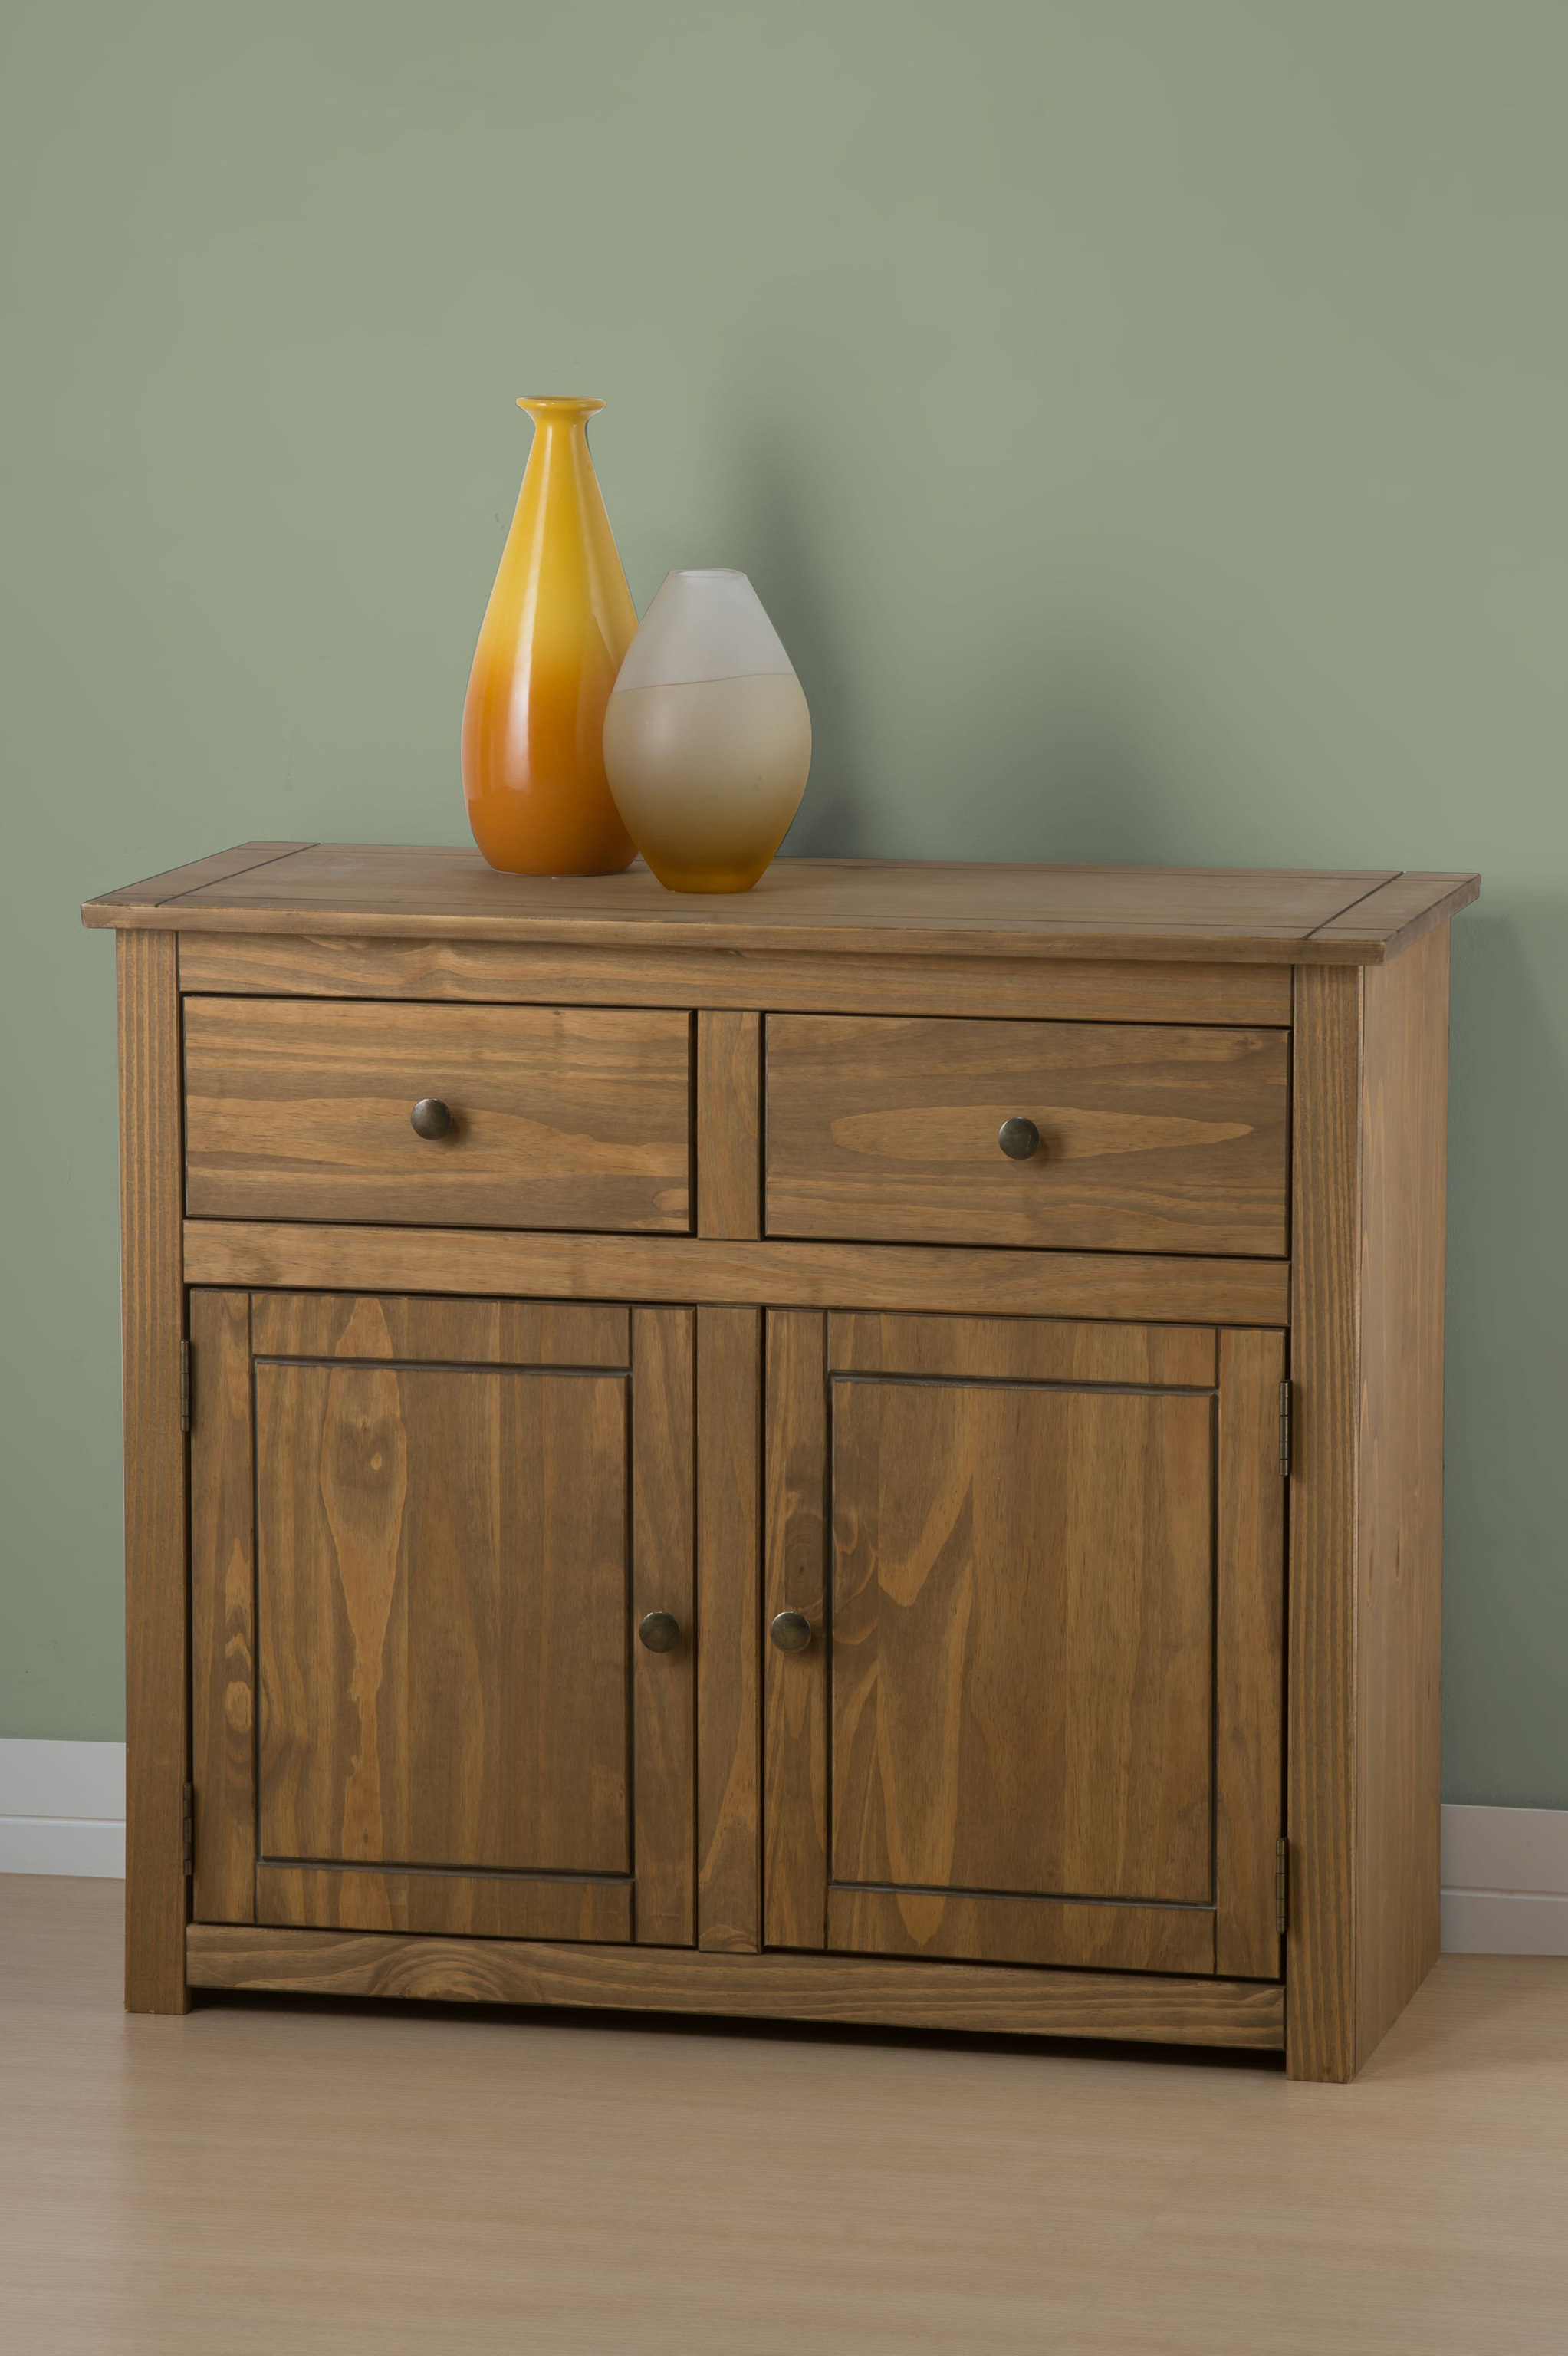 Reclaimed Pine Turquoise 4 Door Sideboards Pertaining To Most Up To Date Distressed Waxed Pine Finish Sideboard Cabinet Storage Cupboard Unit (Gallery 11 of 20)